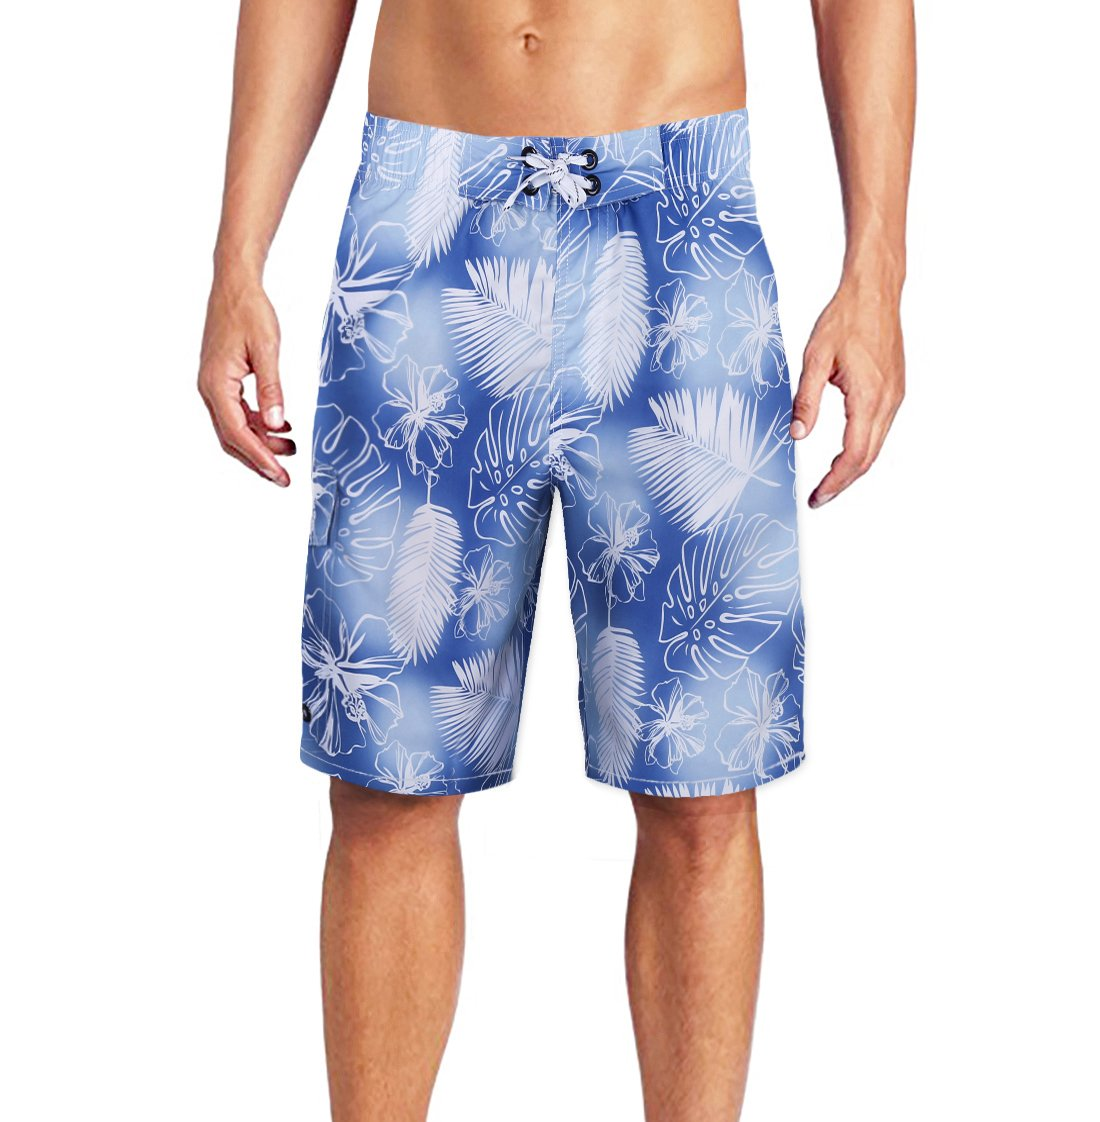 ELETOP Men's Swim Trunks Quick Dry Board Shorts with Meshlining and Cargo Pocket Length at The Knee